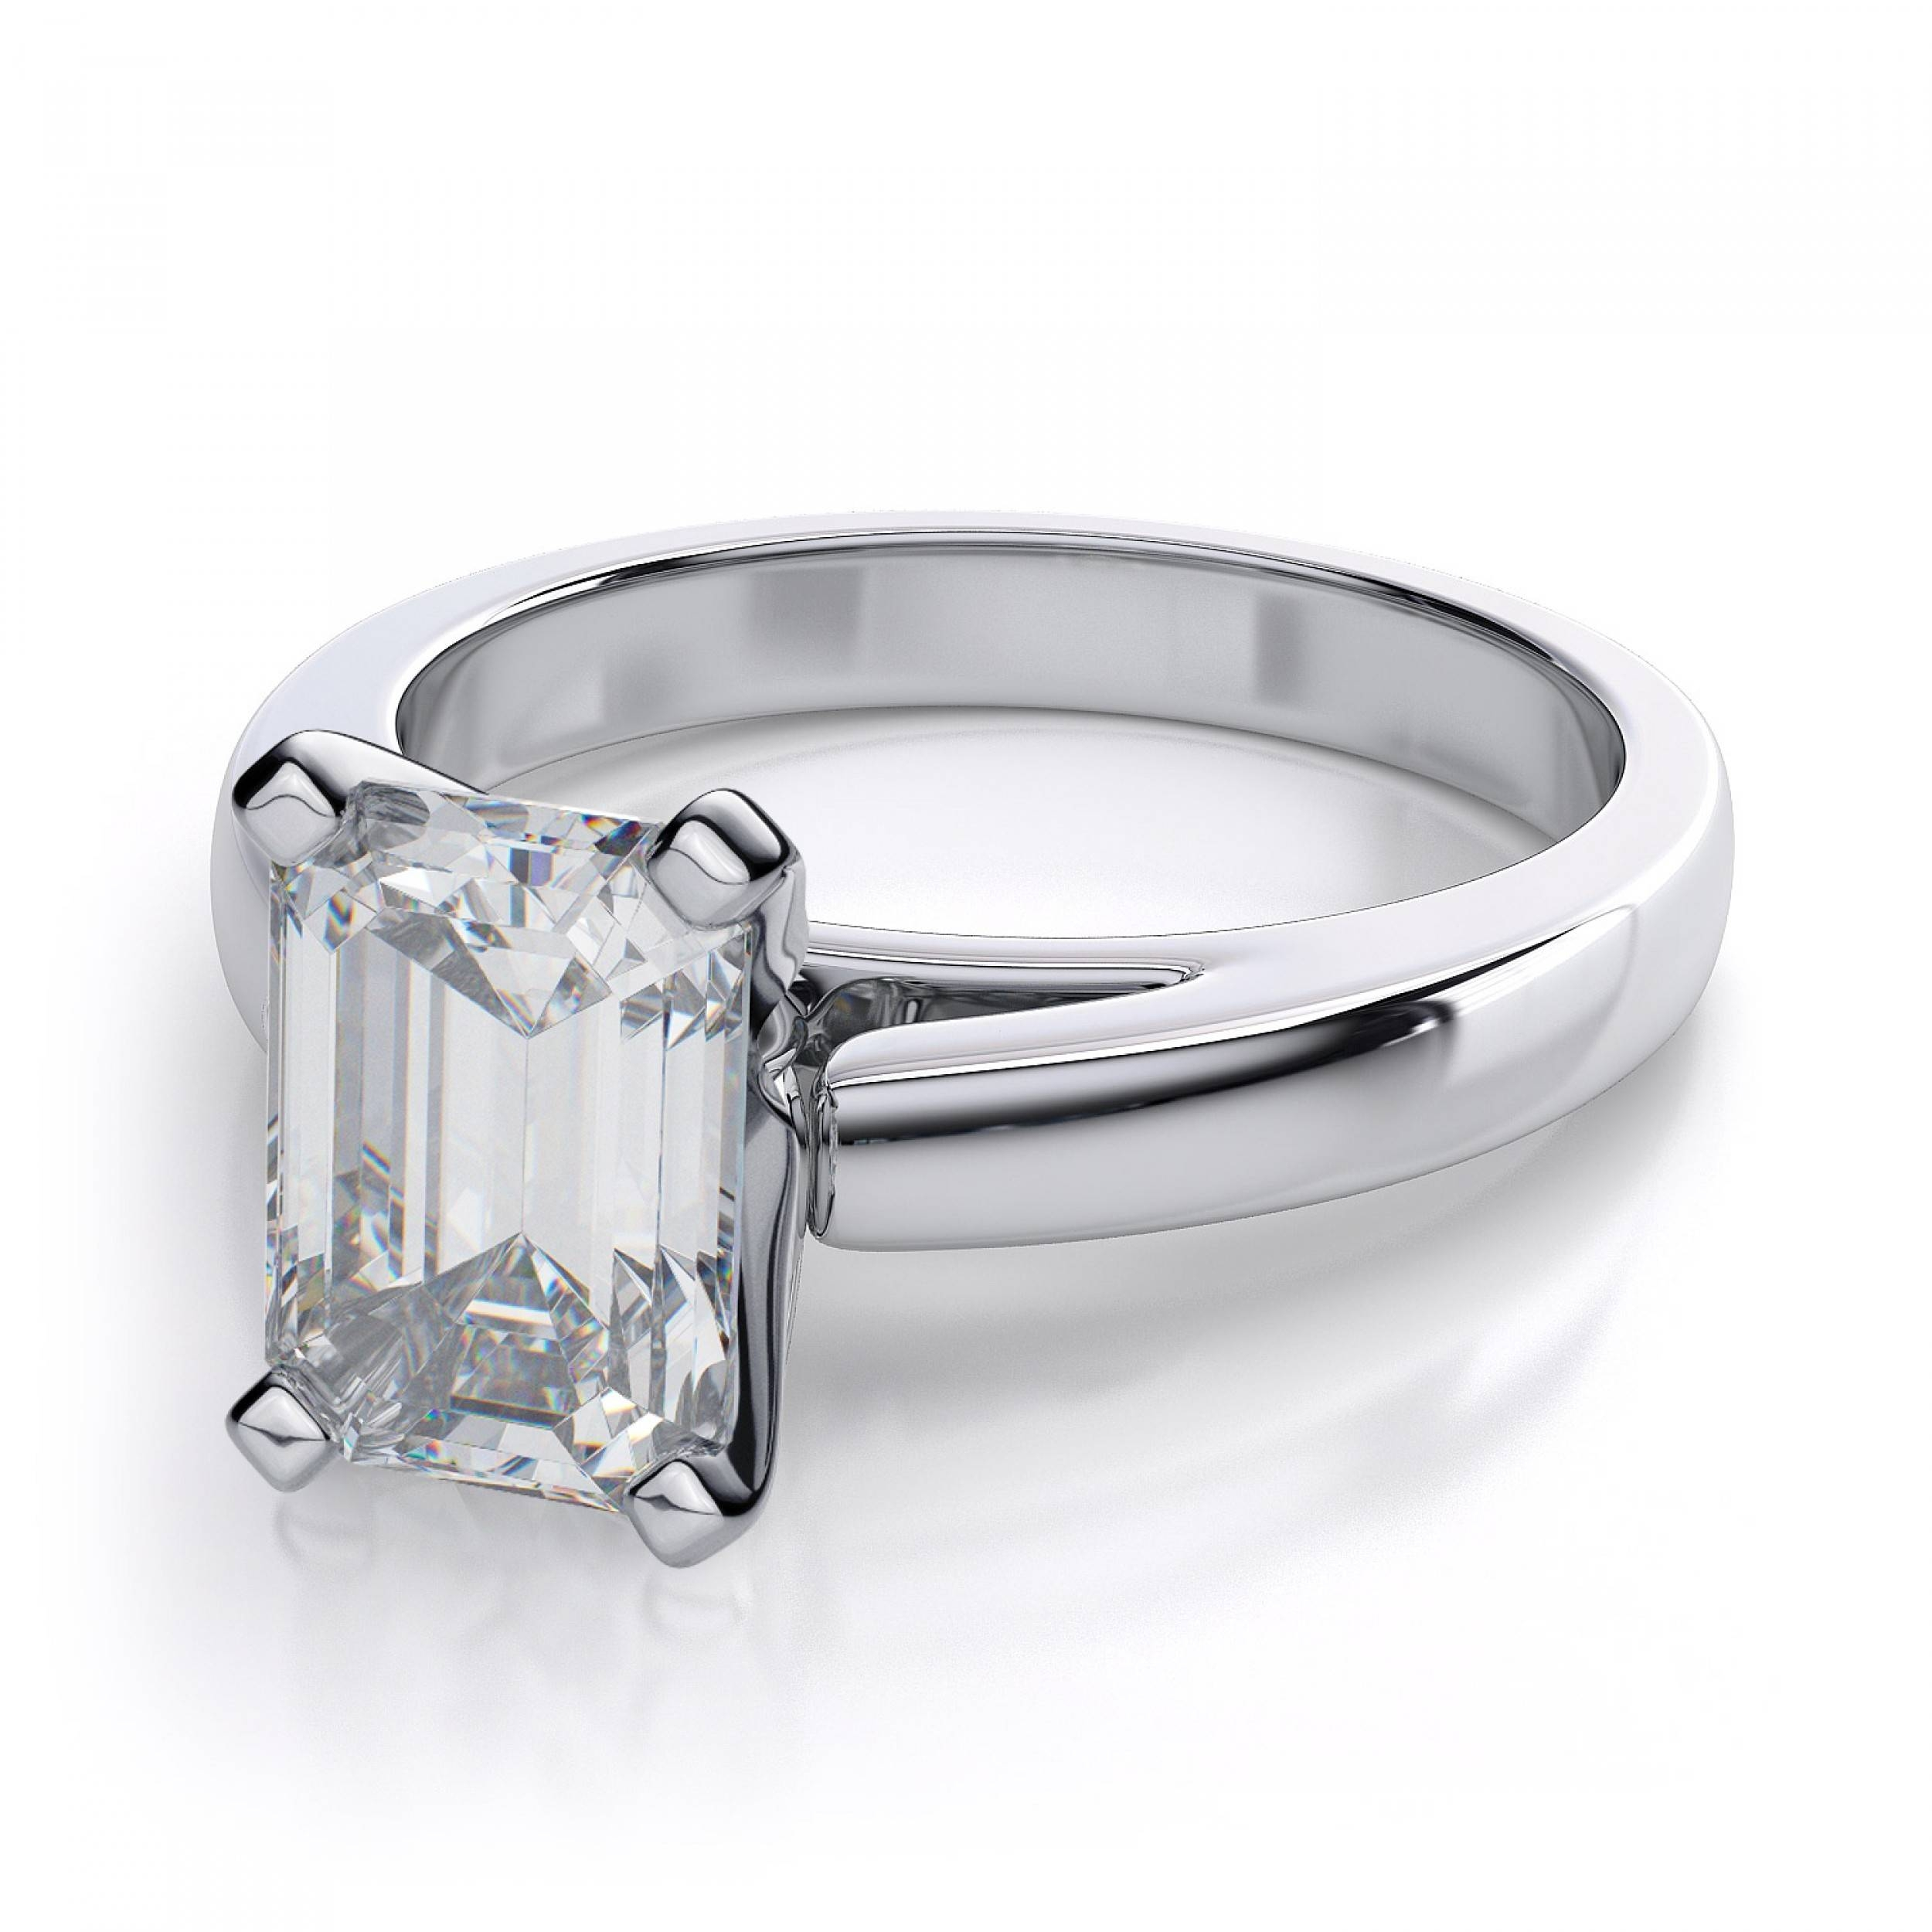 Emerald Cut Solitaire Engagement Ring – 14K White Gold Regarding White Emerald Engagement Rings (Gallery 6 of 15)